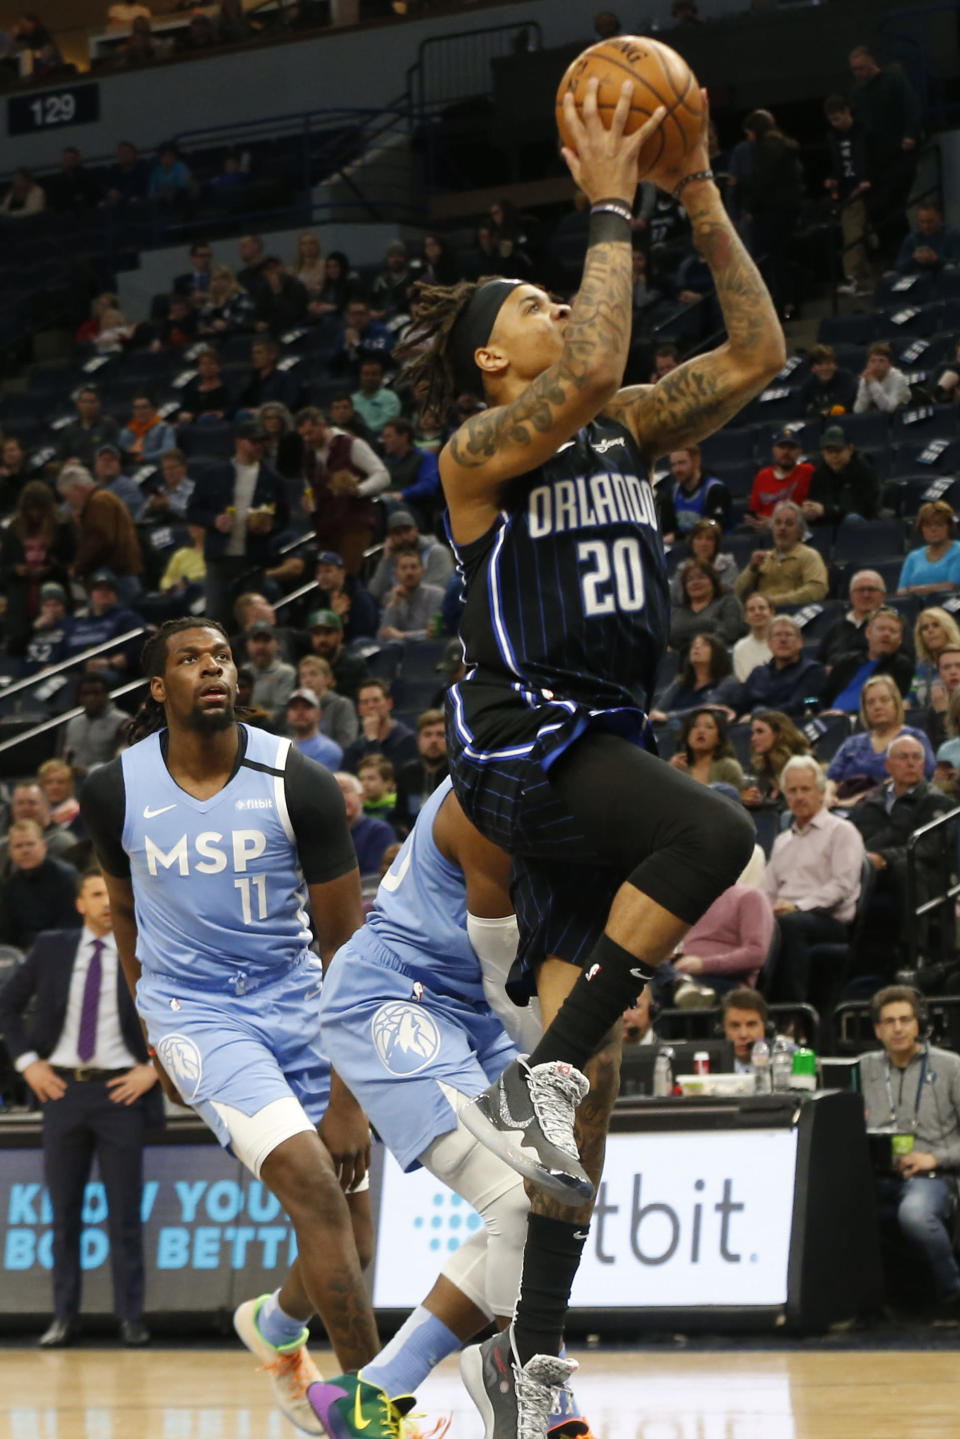 Orlando Magic's Markelle Fultz, right, lays up as Minnesota Timberwolves' D'Angelo Russell watches in the first half of an NBA basketball game, Friday, March 6, 2020, in Minneapolis. (AP Photo/Jim Mone)